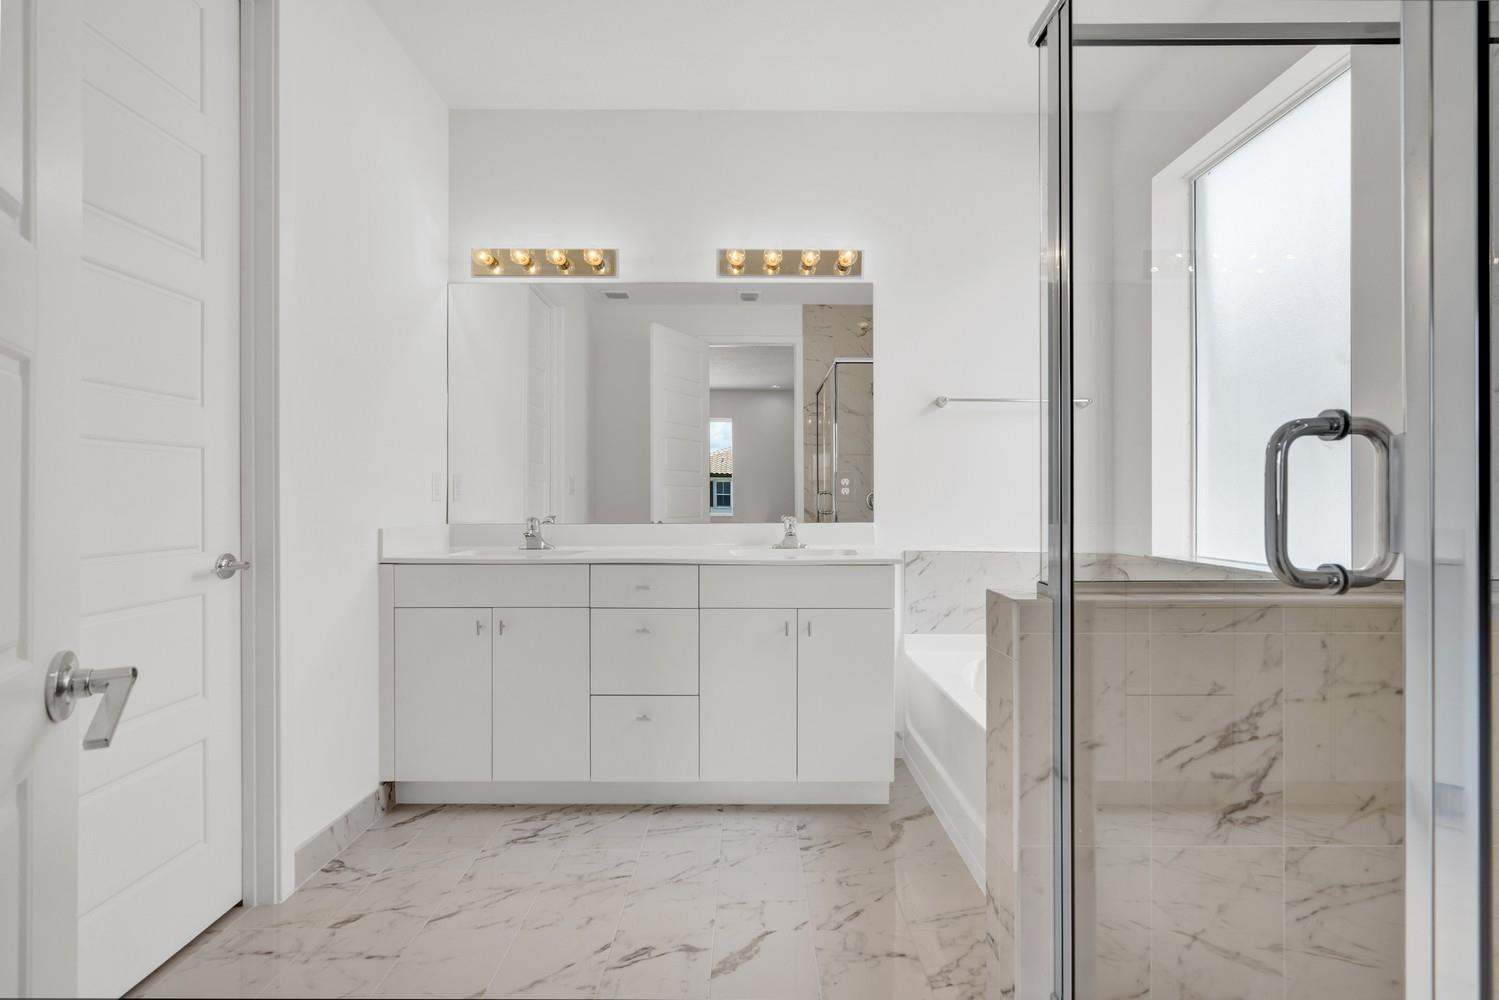 Bathroom featured in the Cole 20-DB By Luxcom Builders in Miami-Dade County, FL